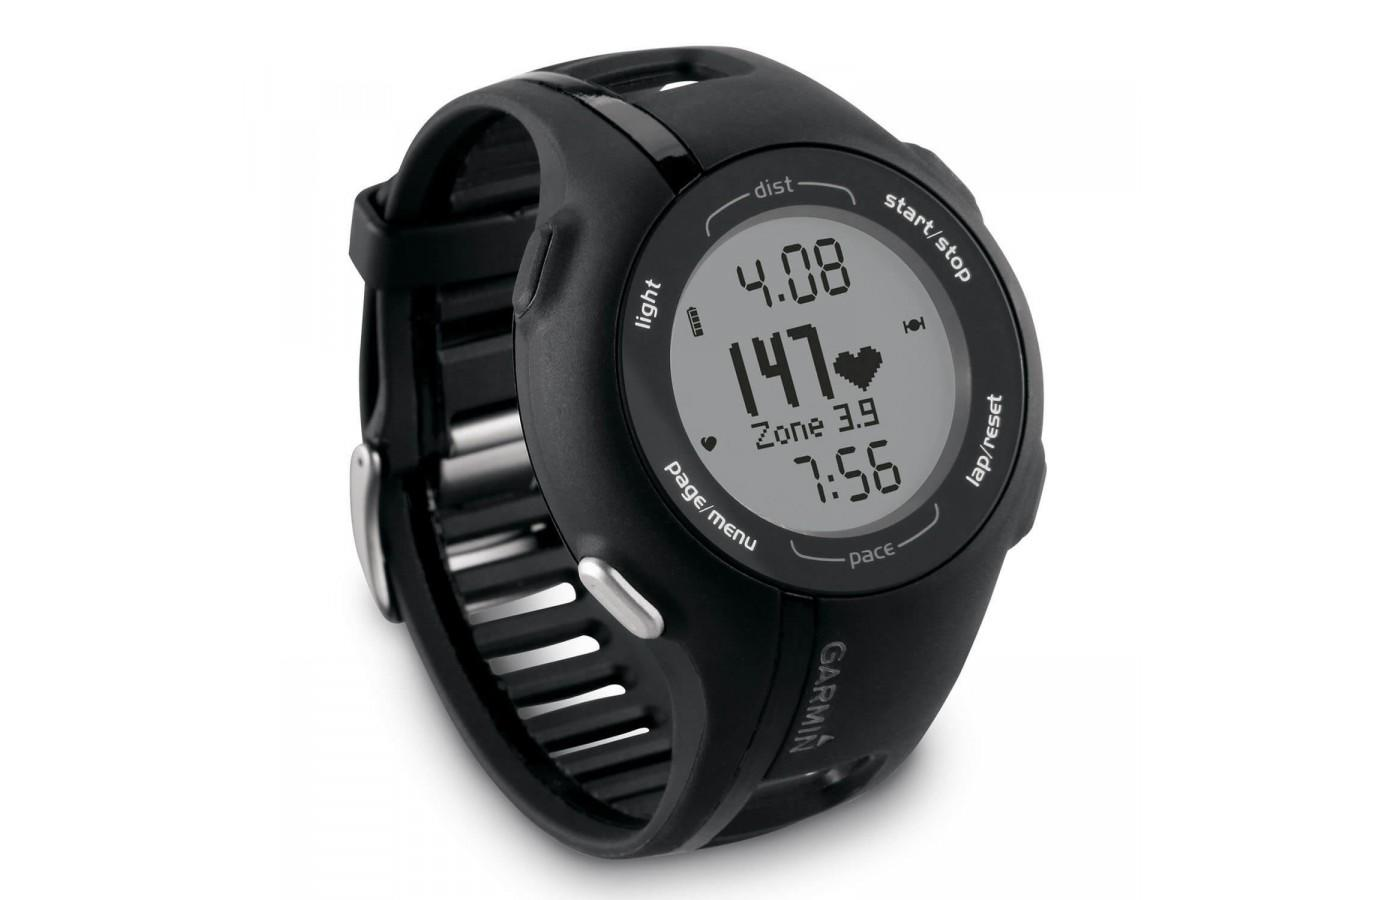 Forerunner 210 is water and shock resistant